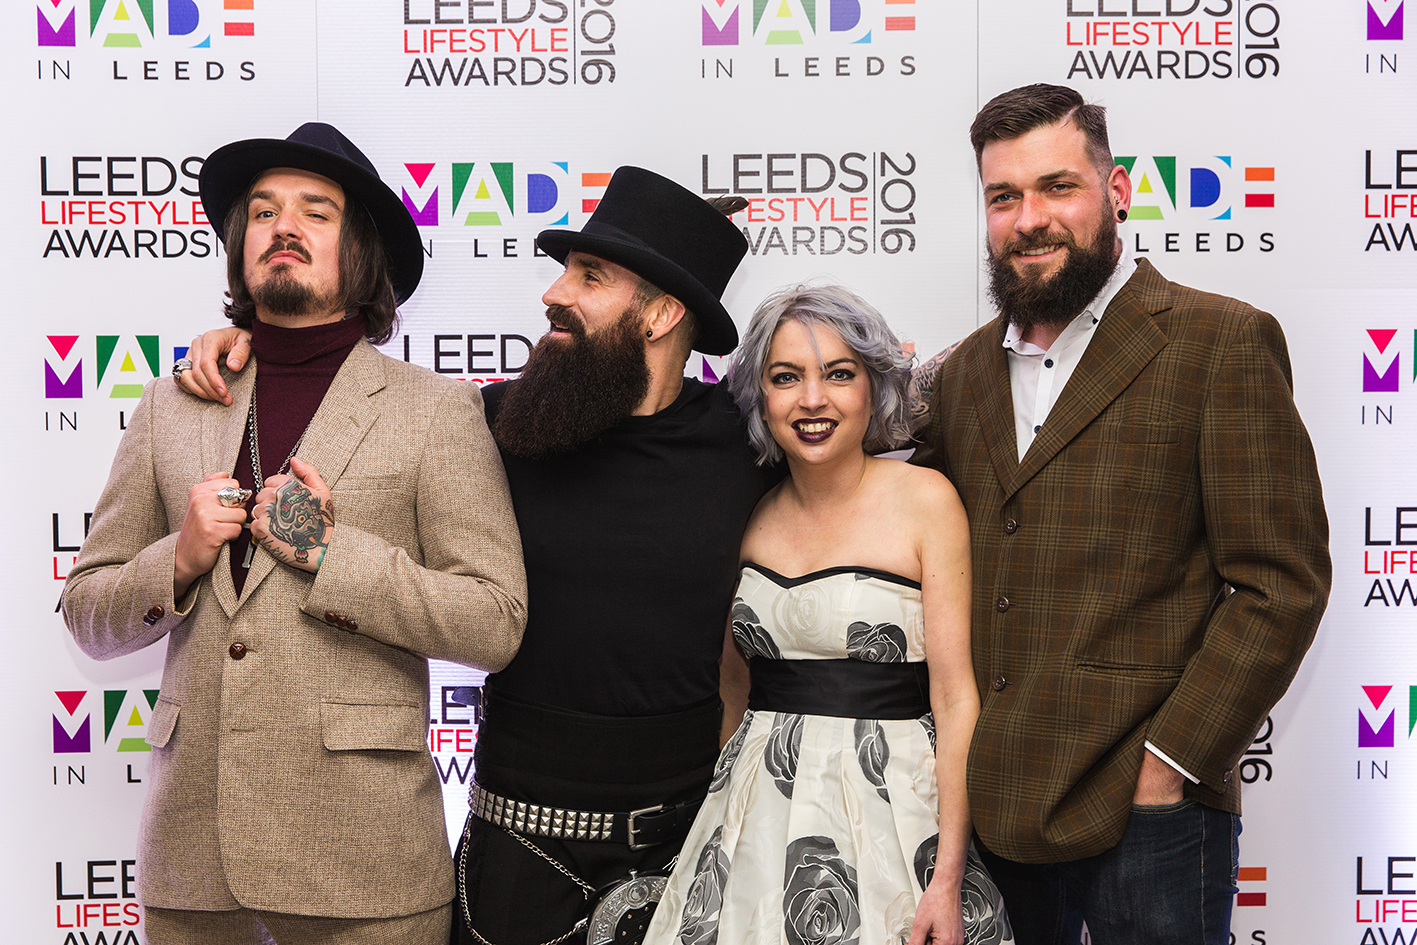 leeds-lifestyle-awards-2016-photos-by-pure-aperture-84-small